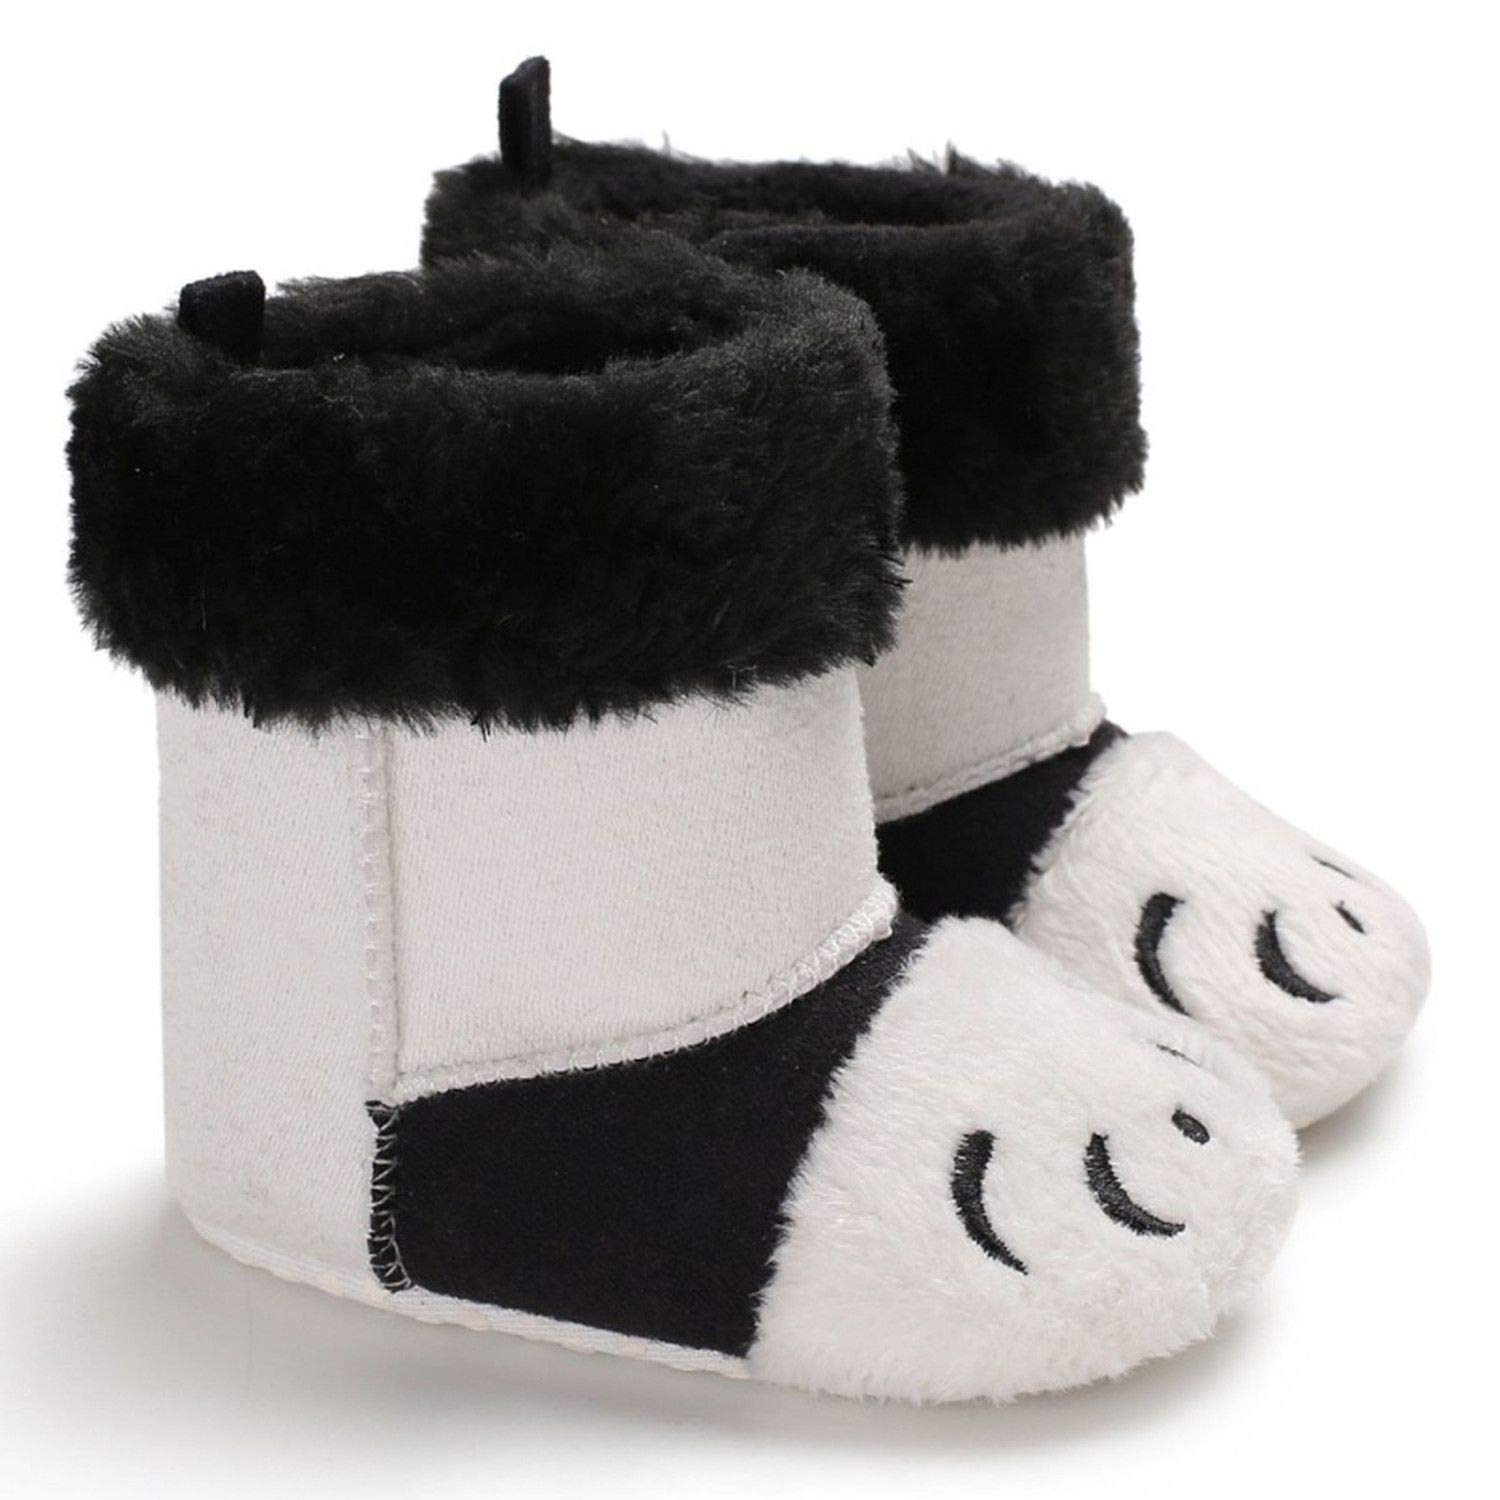 Newborn Baby Boots Winter Super Warm Patch Boot for Baby Girls Boys Soft Bottom Indoor Baby Shoes 0-18M